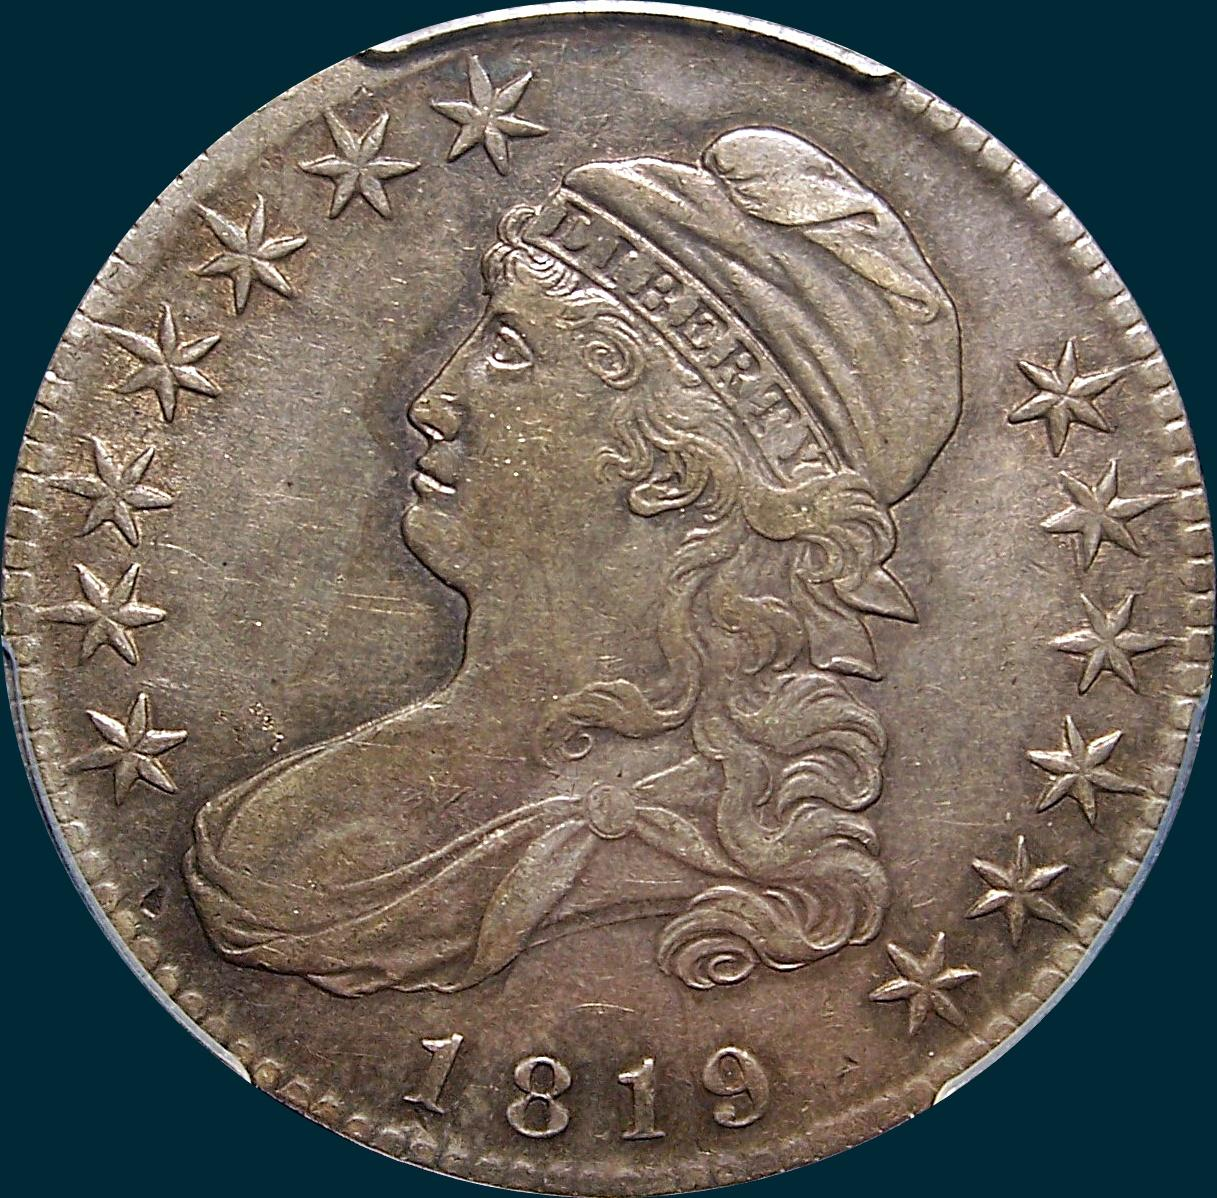 1819 O-113, capped bust half dollar